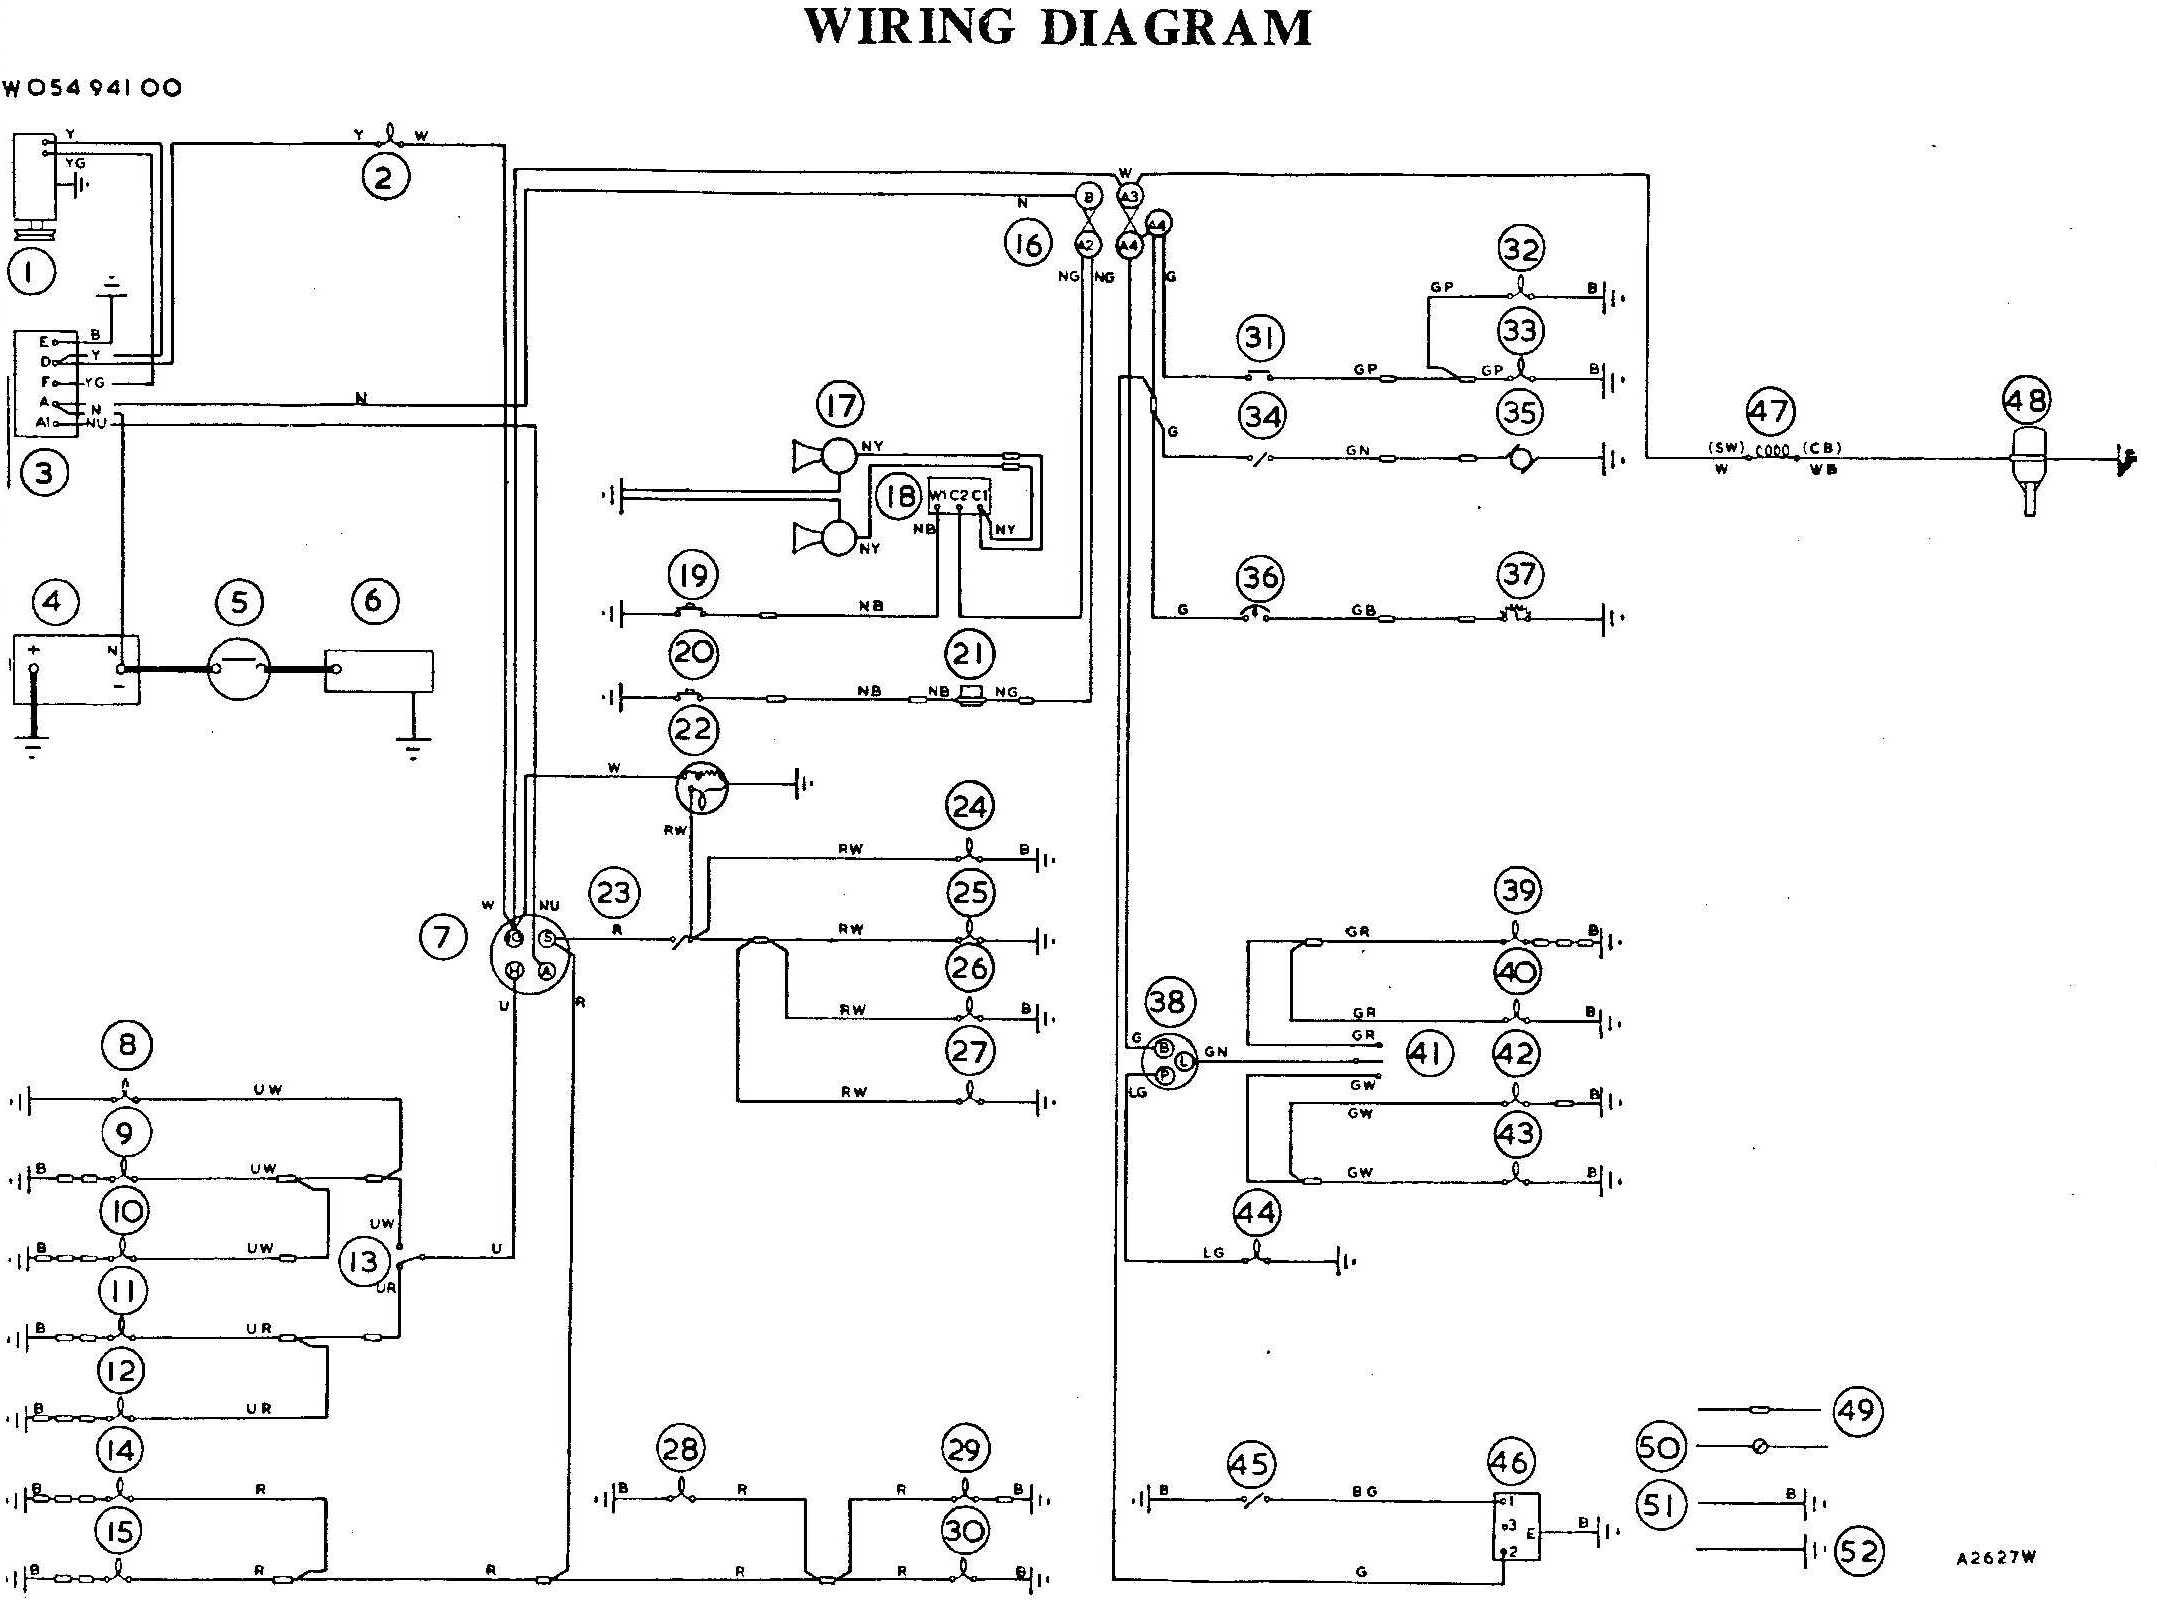 Wiring Diagram For Attached Garage : Benos